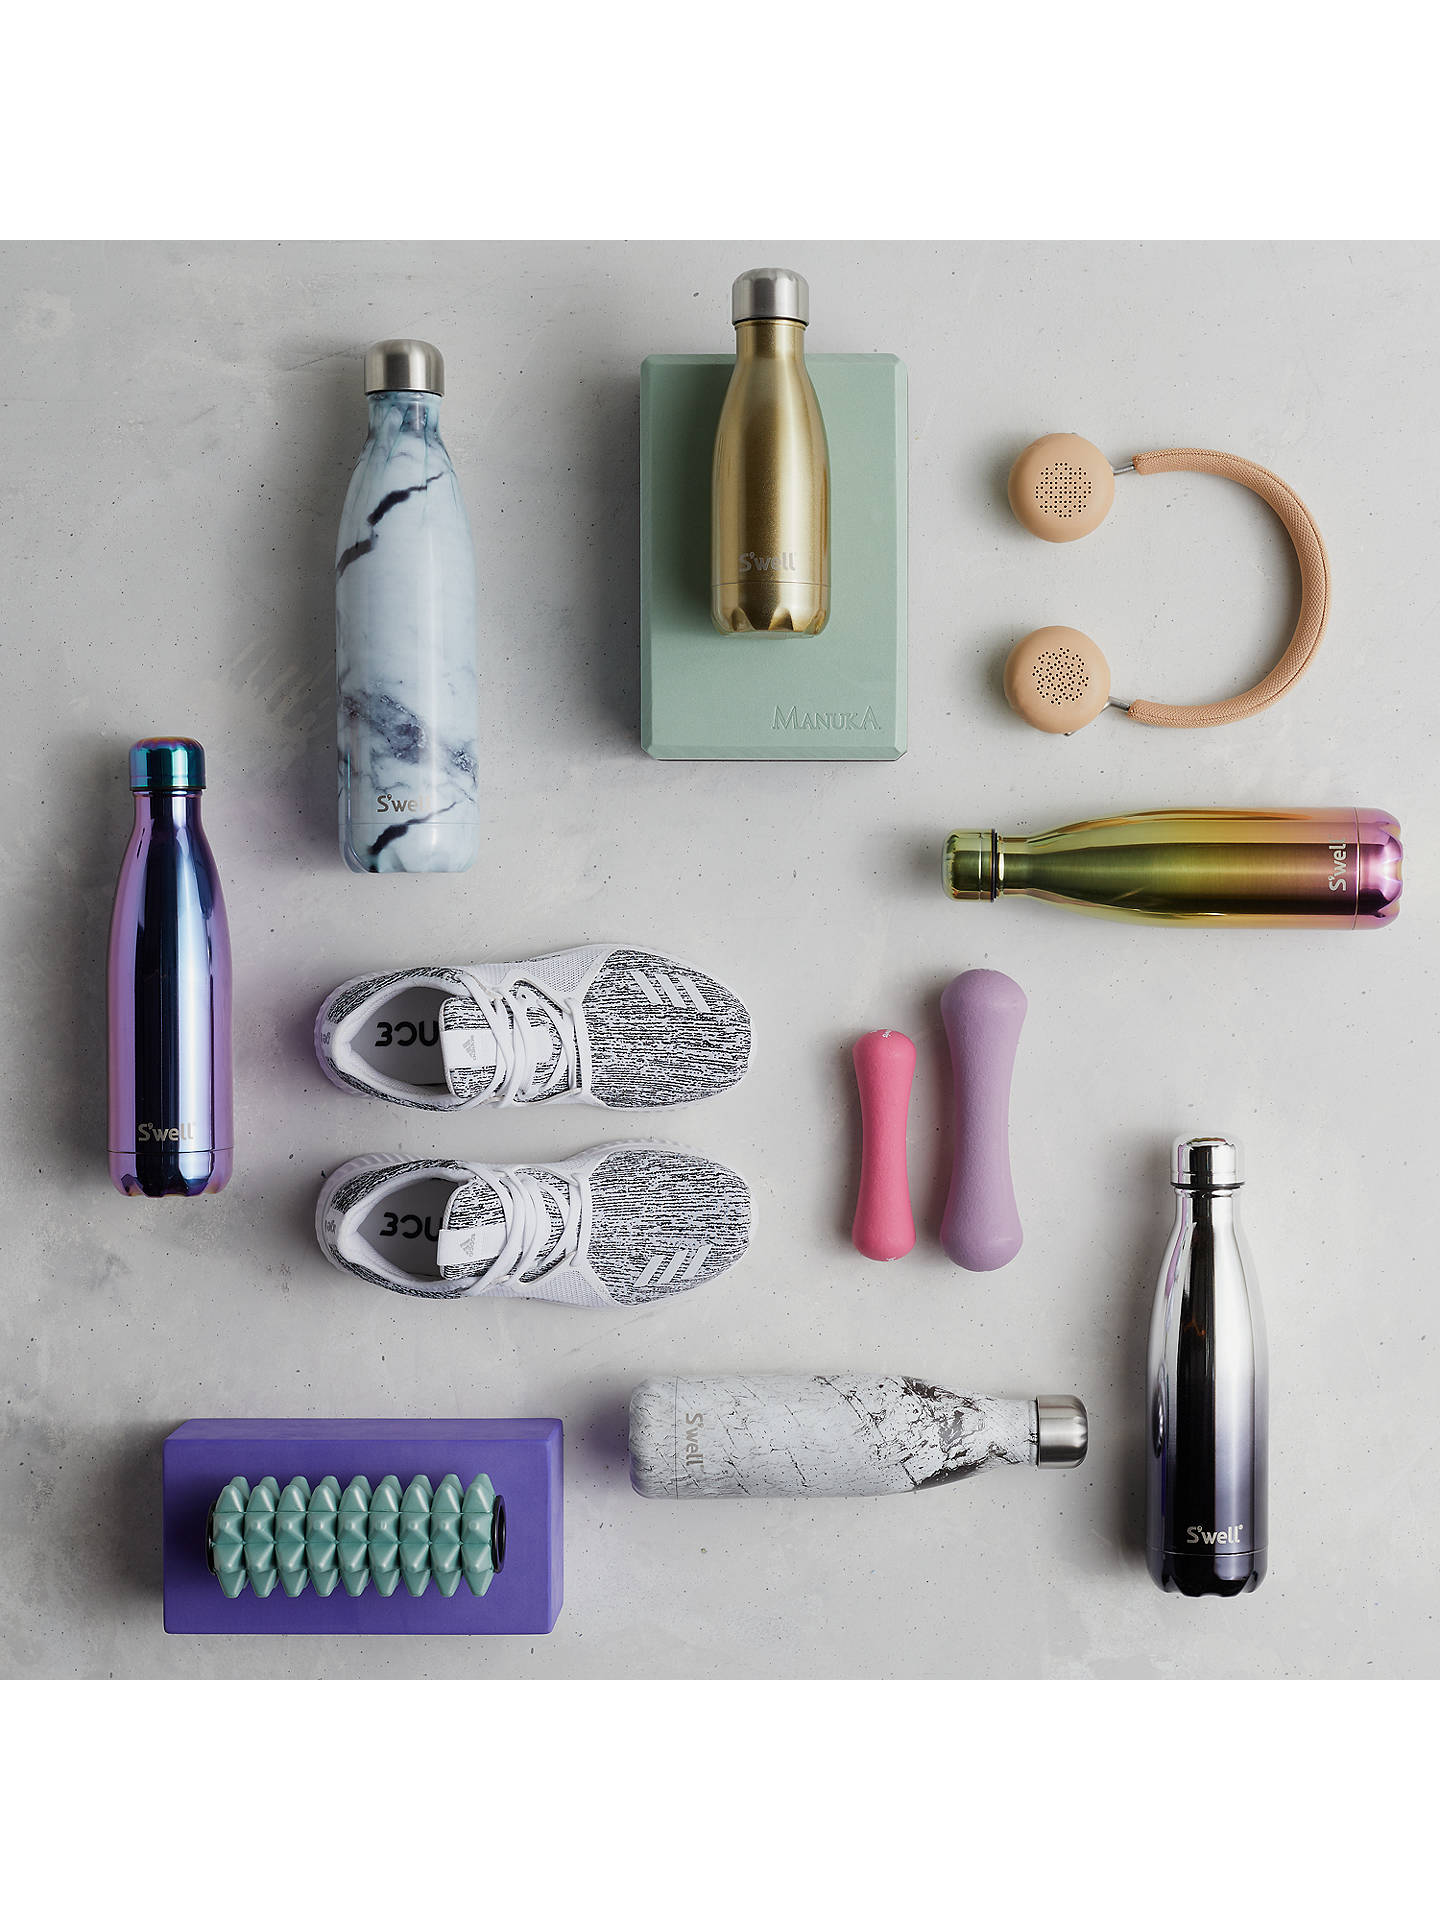 Buy S'well White Marble Vacuum Insulated Drinks Bottle, 260ml Online at johnlewis.com